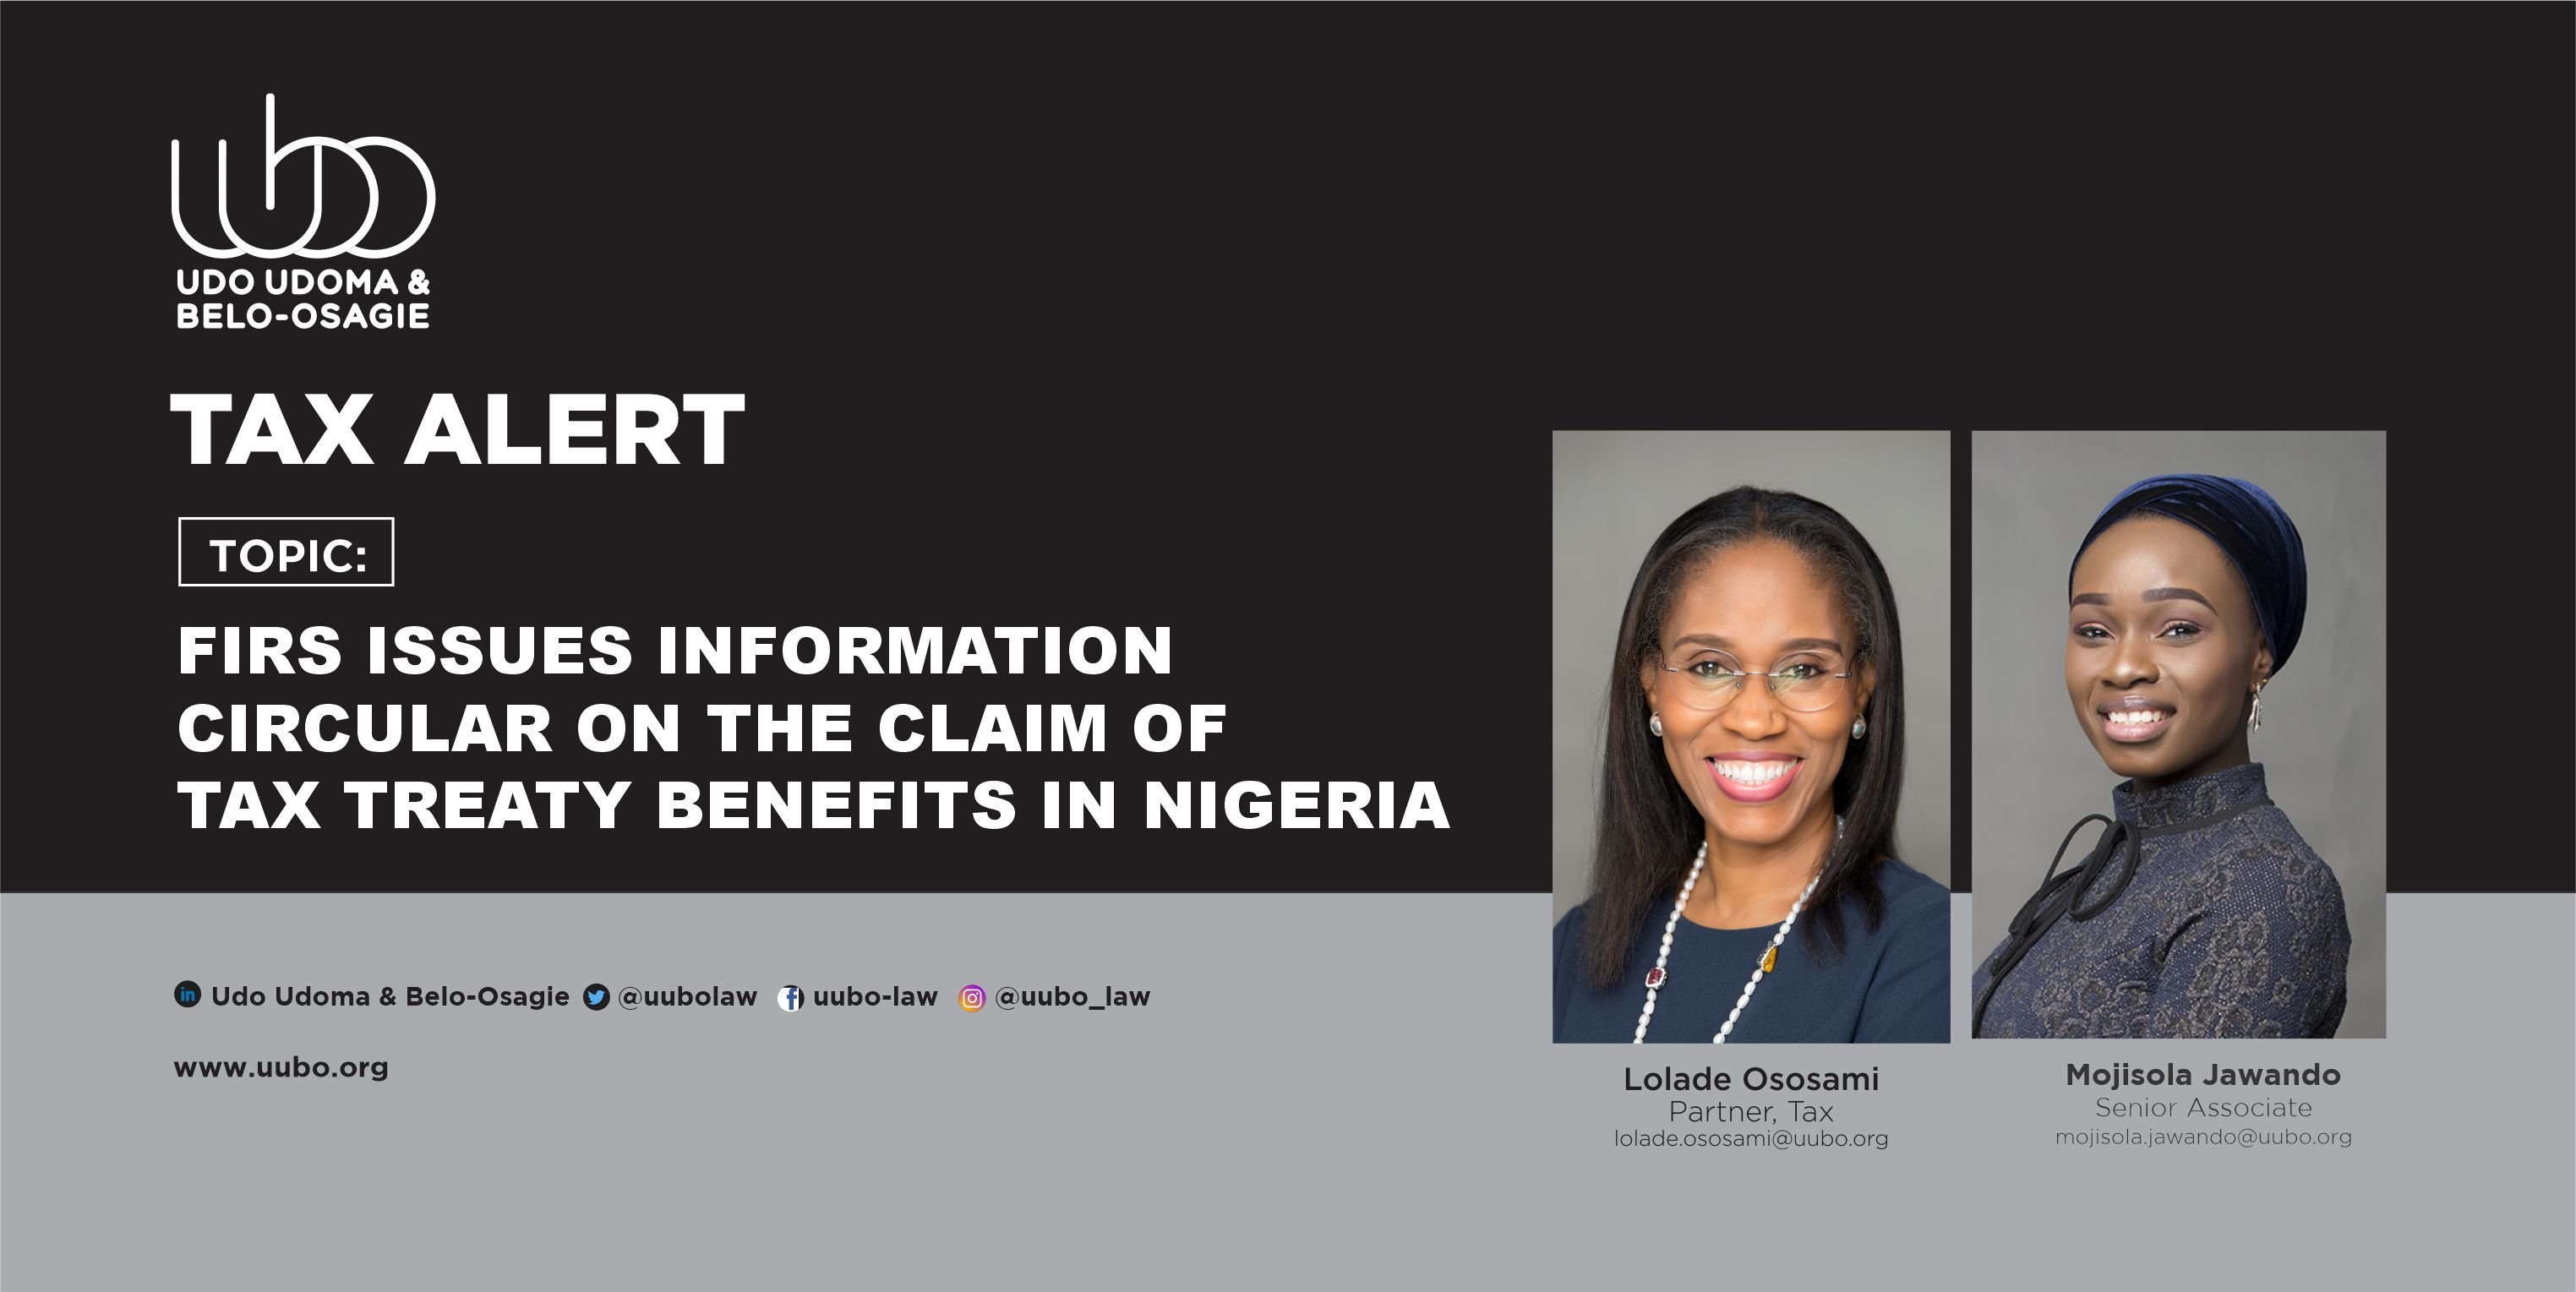 FIRS ISSUES INFORMATION CIRCULAR ON THE CLAIM OF TAX TREATY BENEFITS   IN NIGERIA